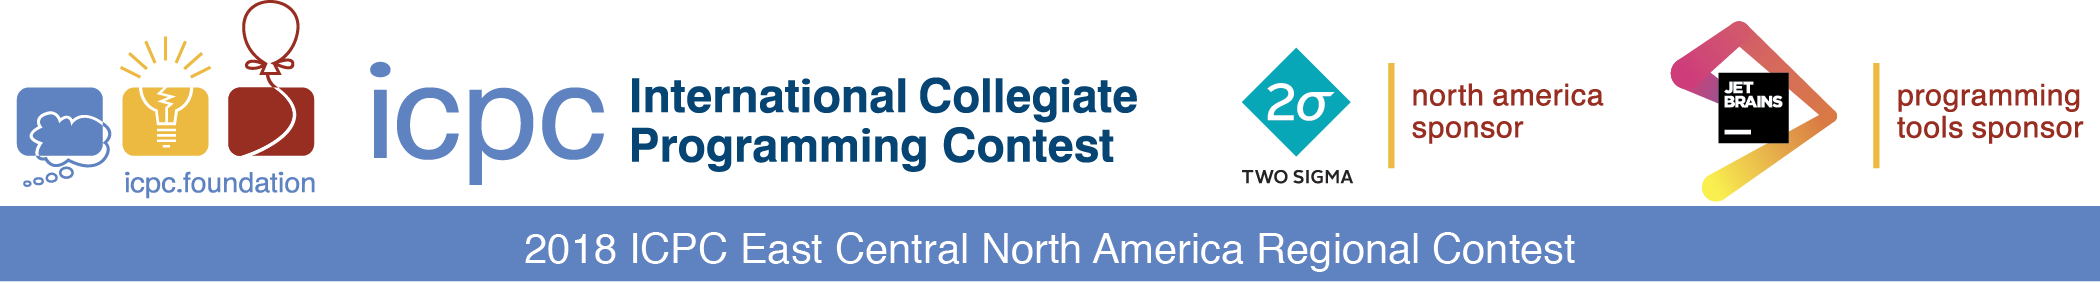 The 2018 ACM ICPC East Central North America Regional Programming Contest Sponsored by Two Sigma and JetBrains